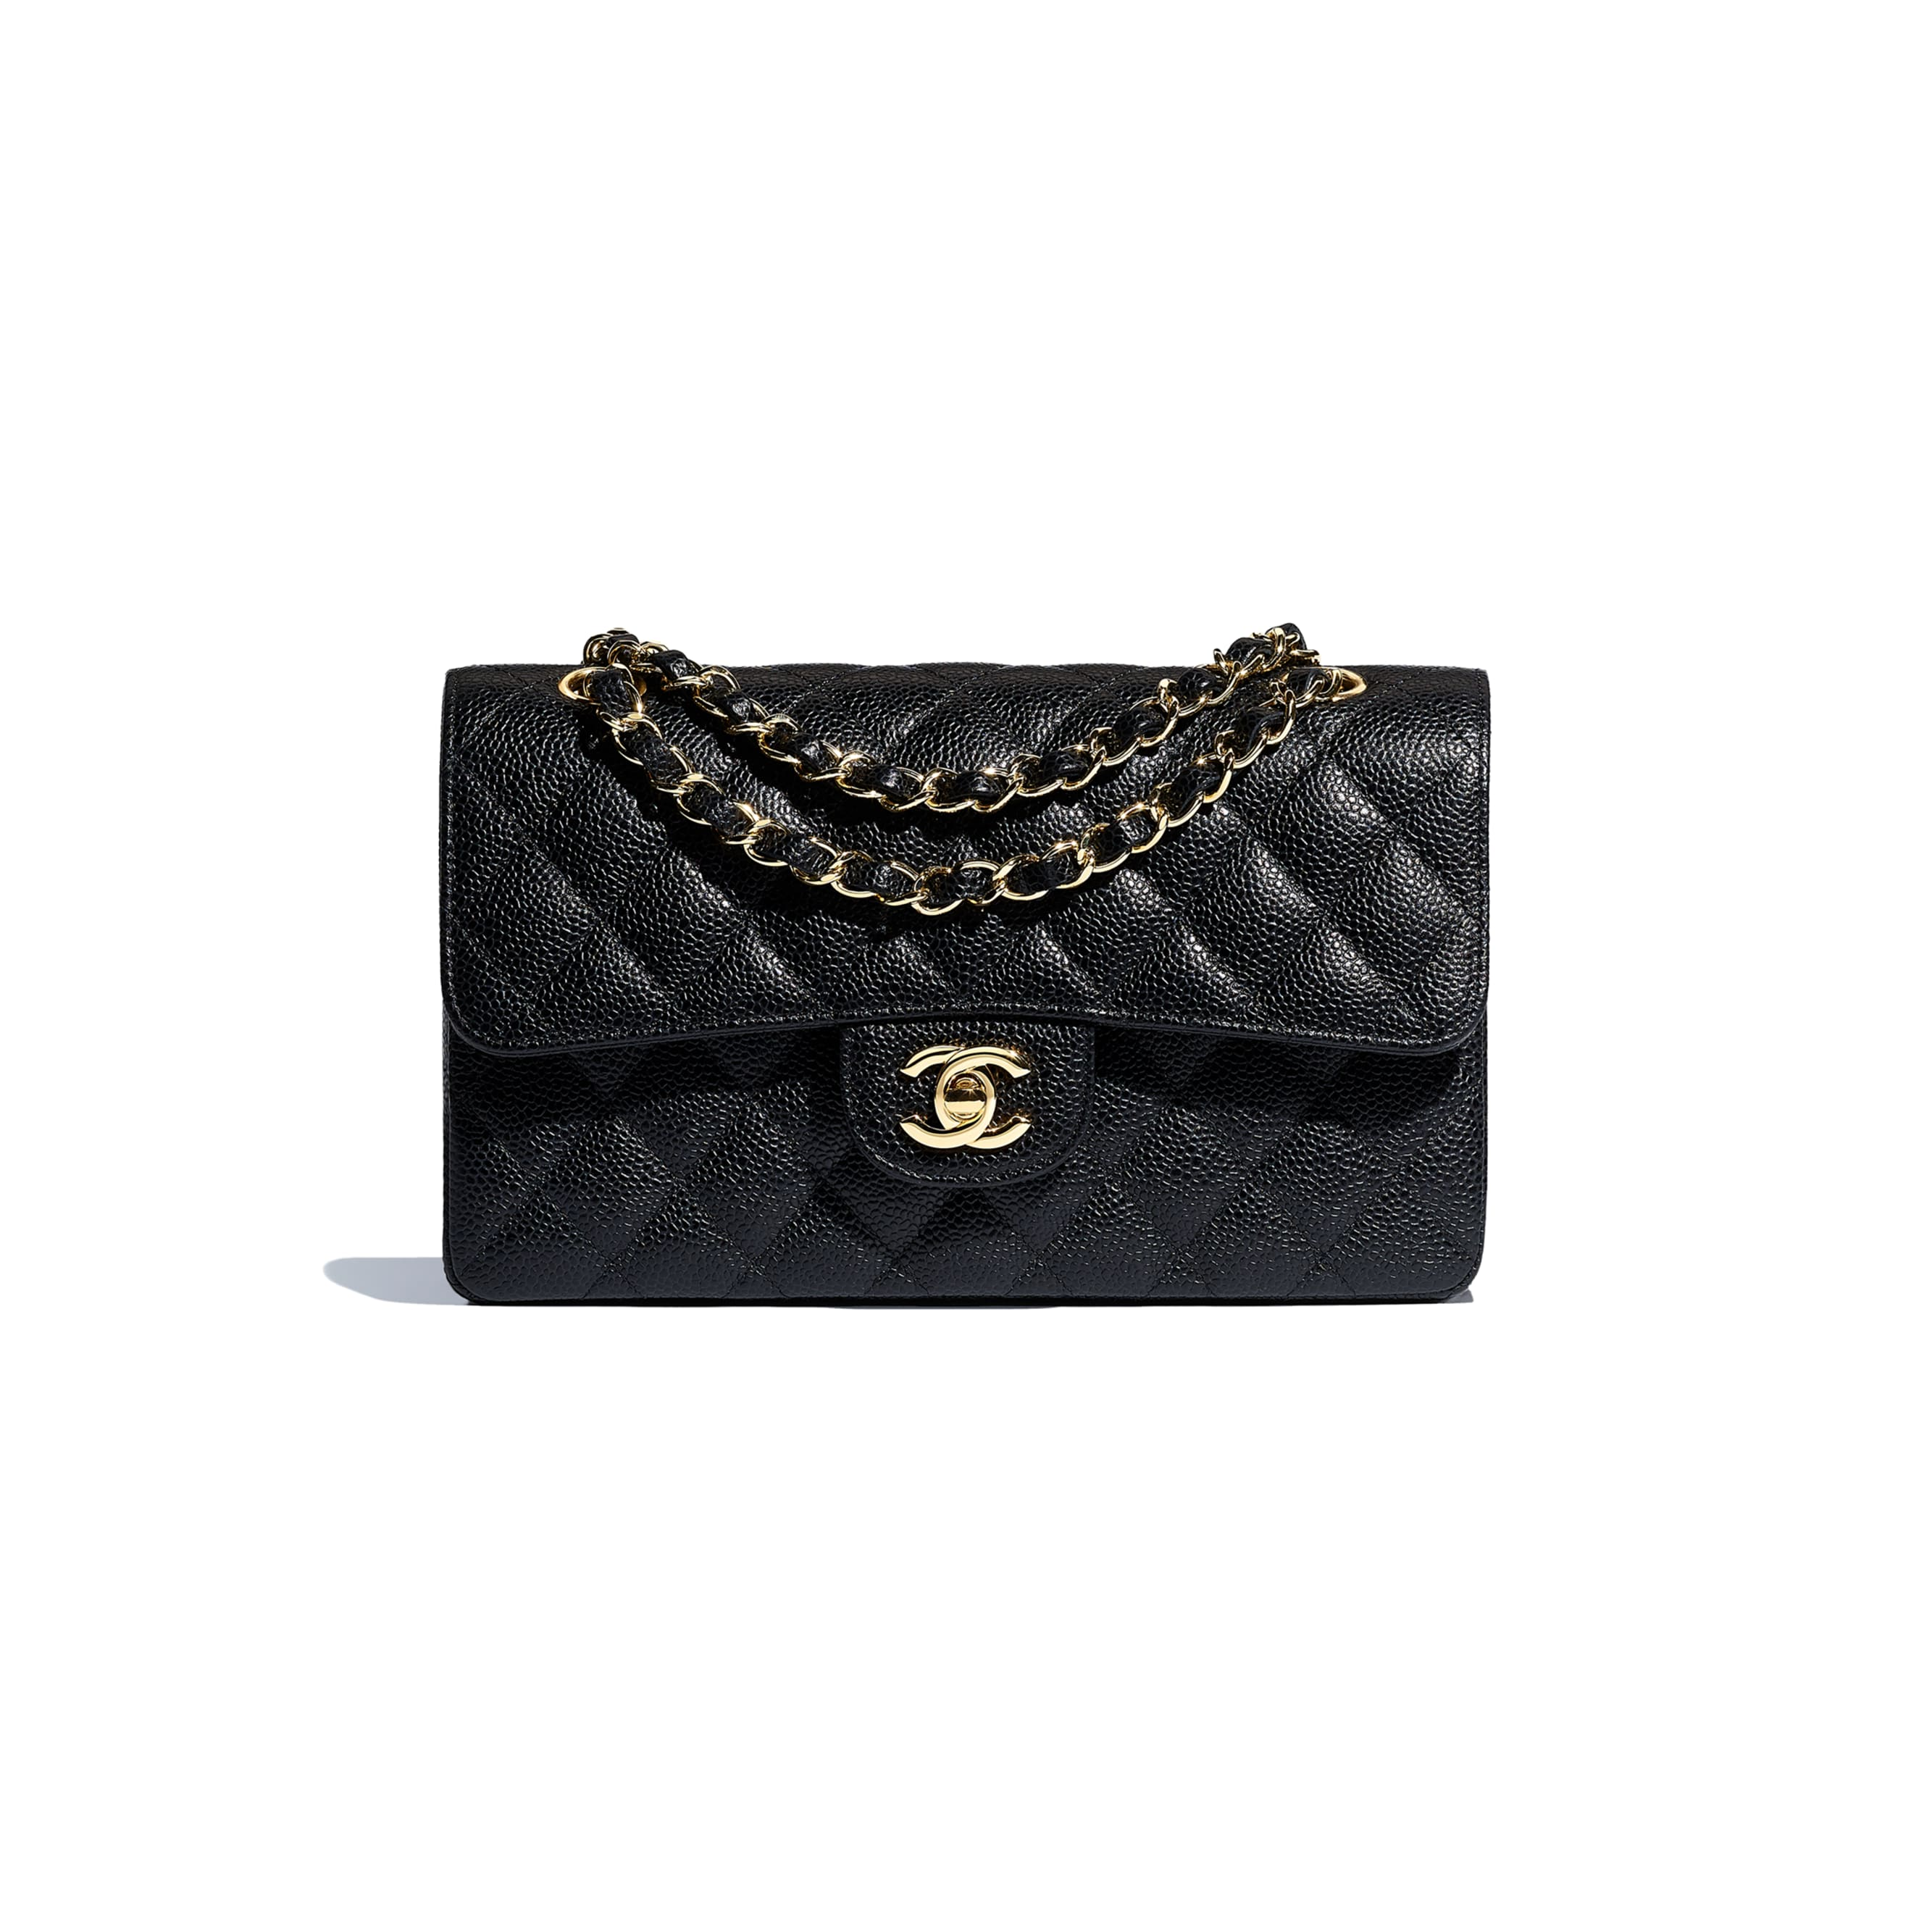 Small Classic Handbag - Black - Grained Calfskin & Gold-Tone Metal - CHANEL - Default view - see standard sized version